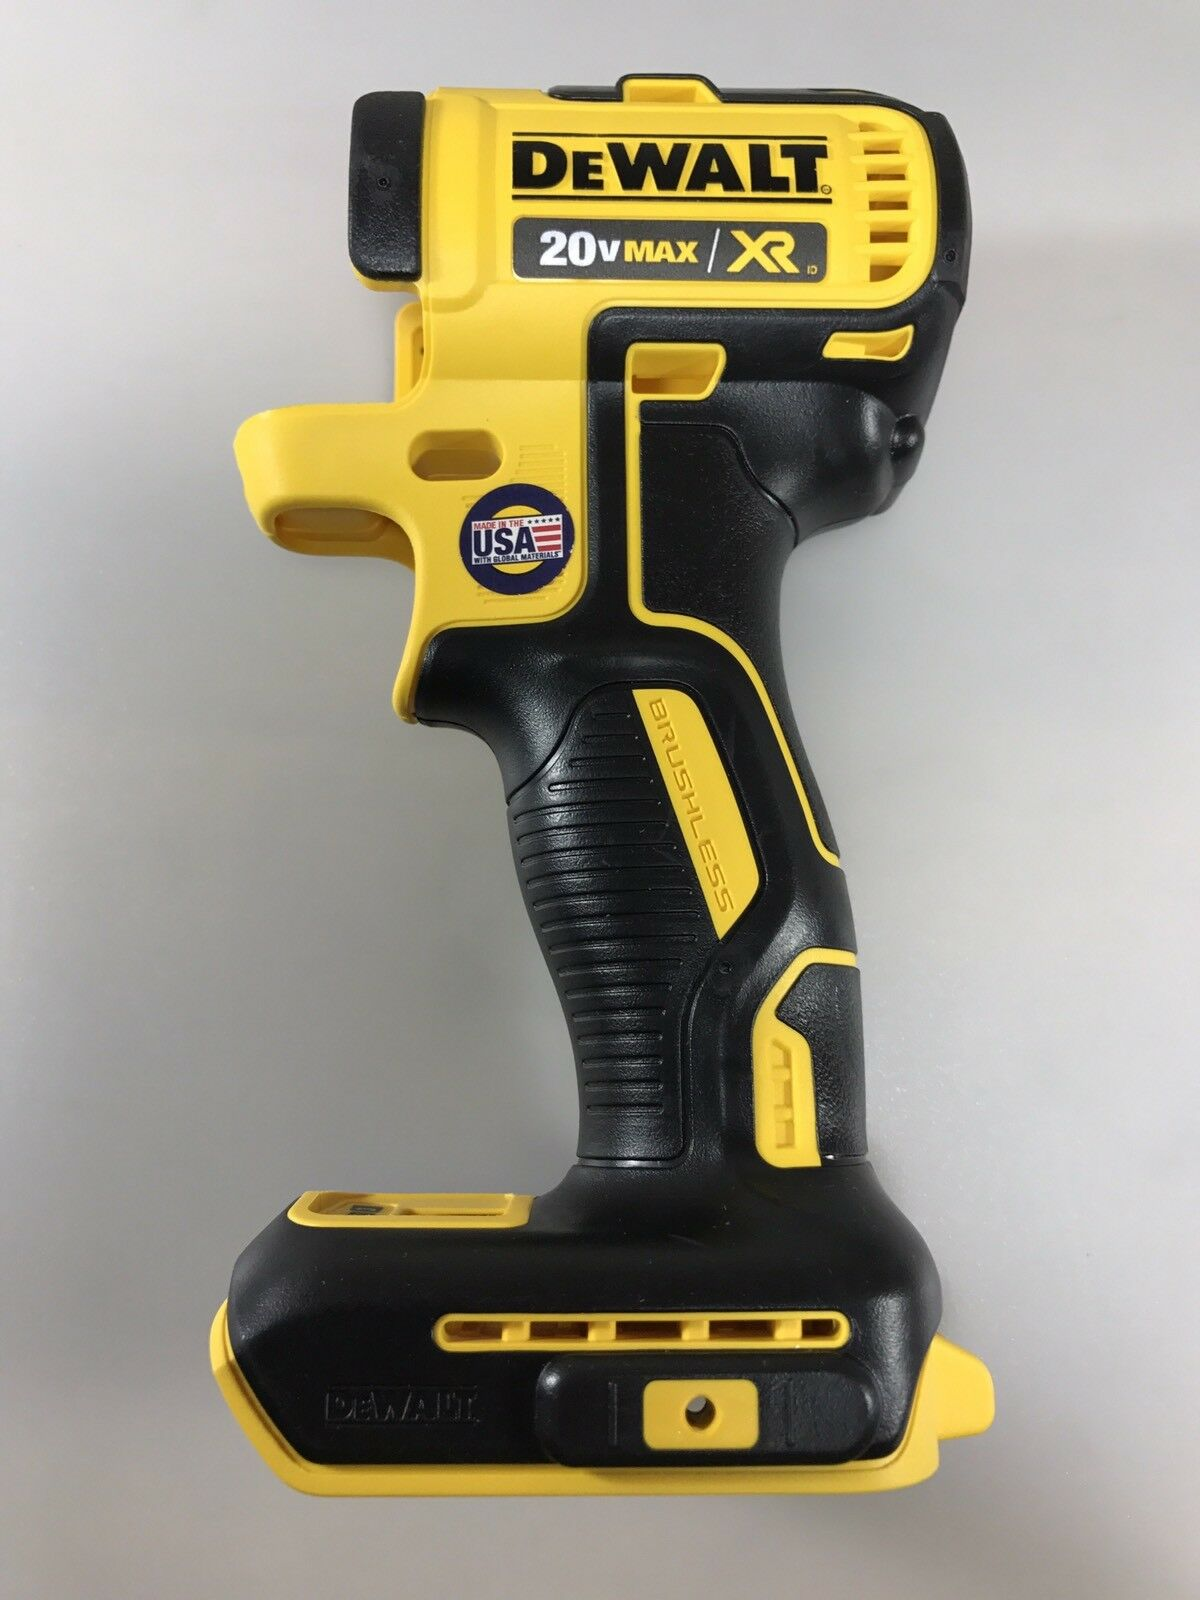 Dewalt DCF887 1/4 Cordless Impact Driver 20v Housing